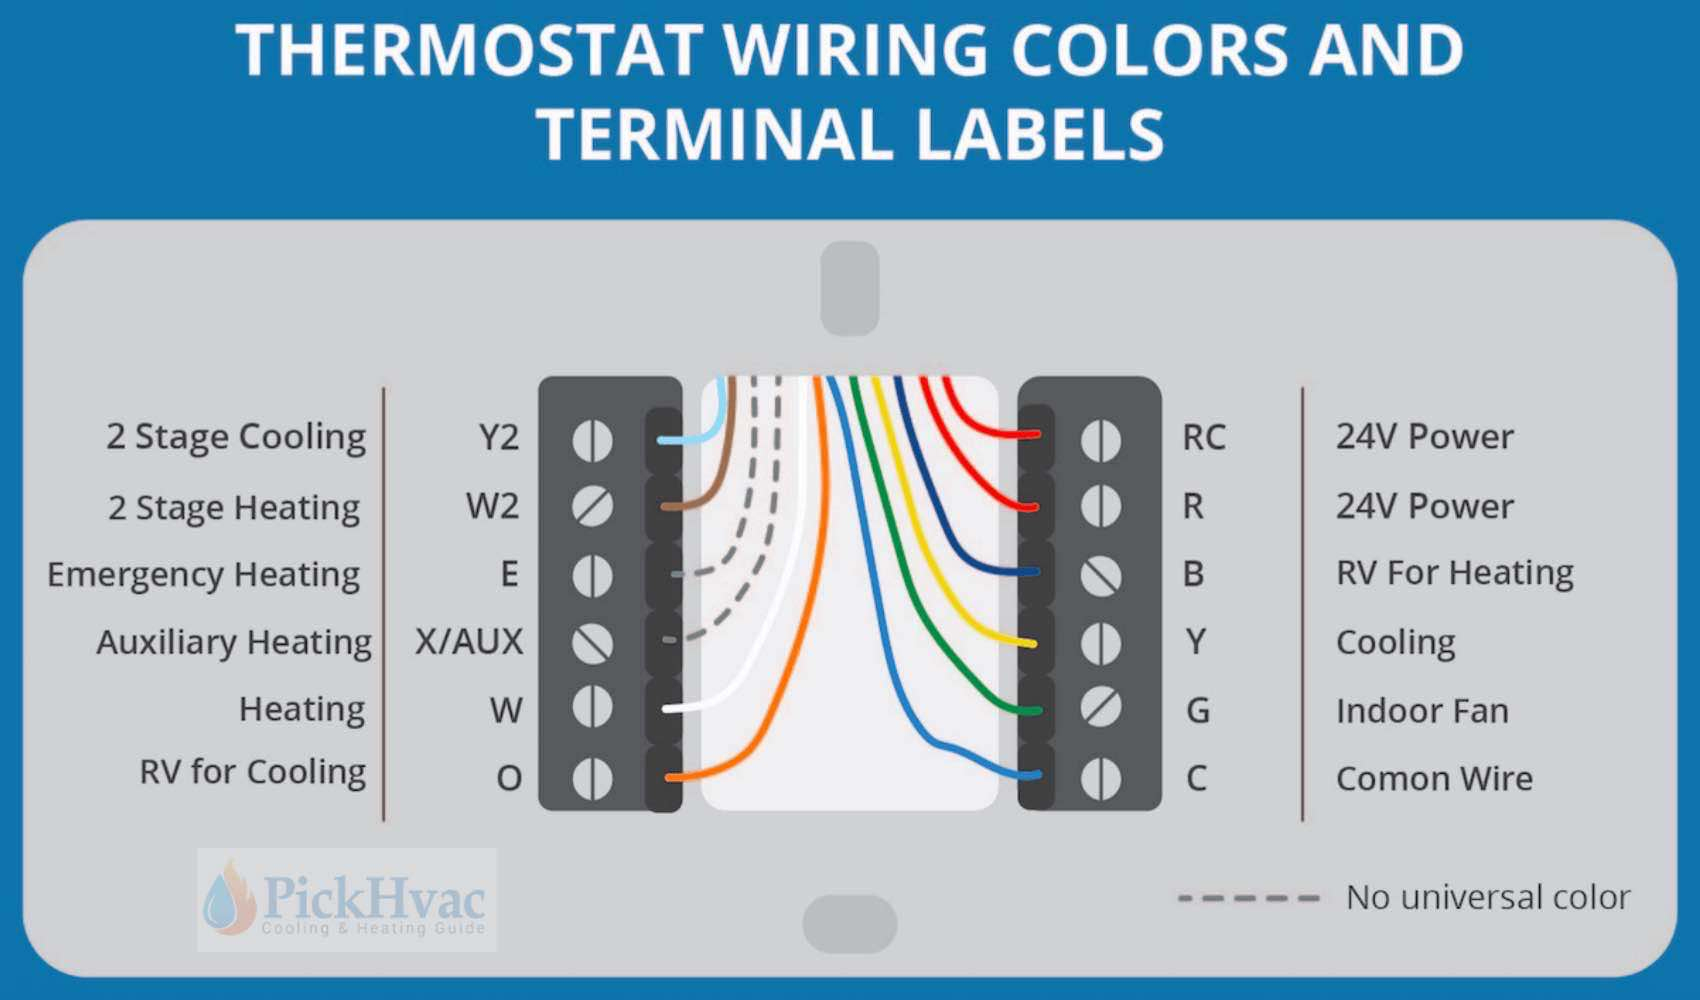 Wondrous Thermostat Wiring Guide Online Wiring Diagram Wiring Cloud Photboapumohammedshrineorg